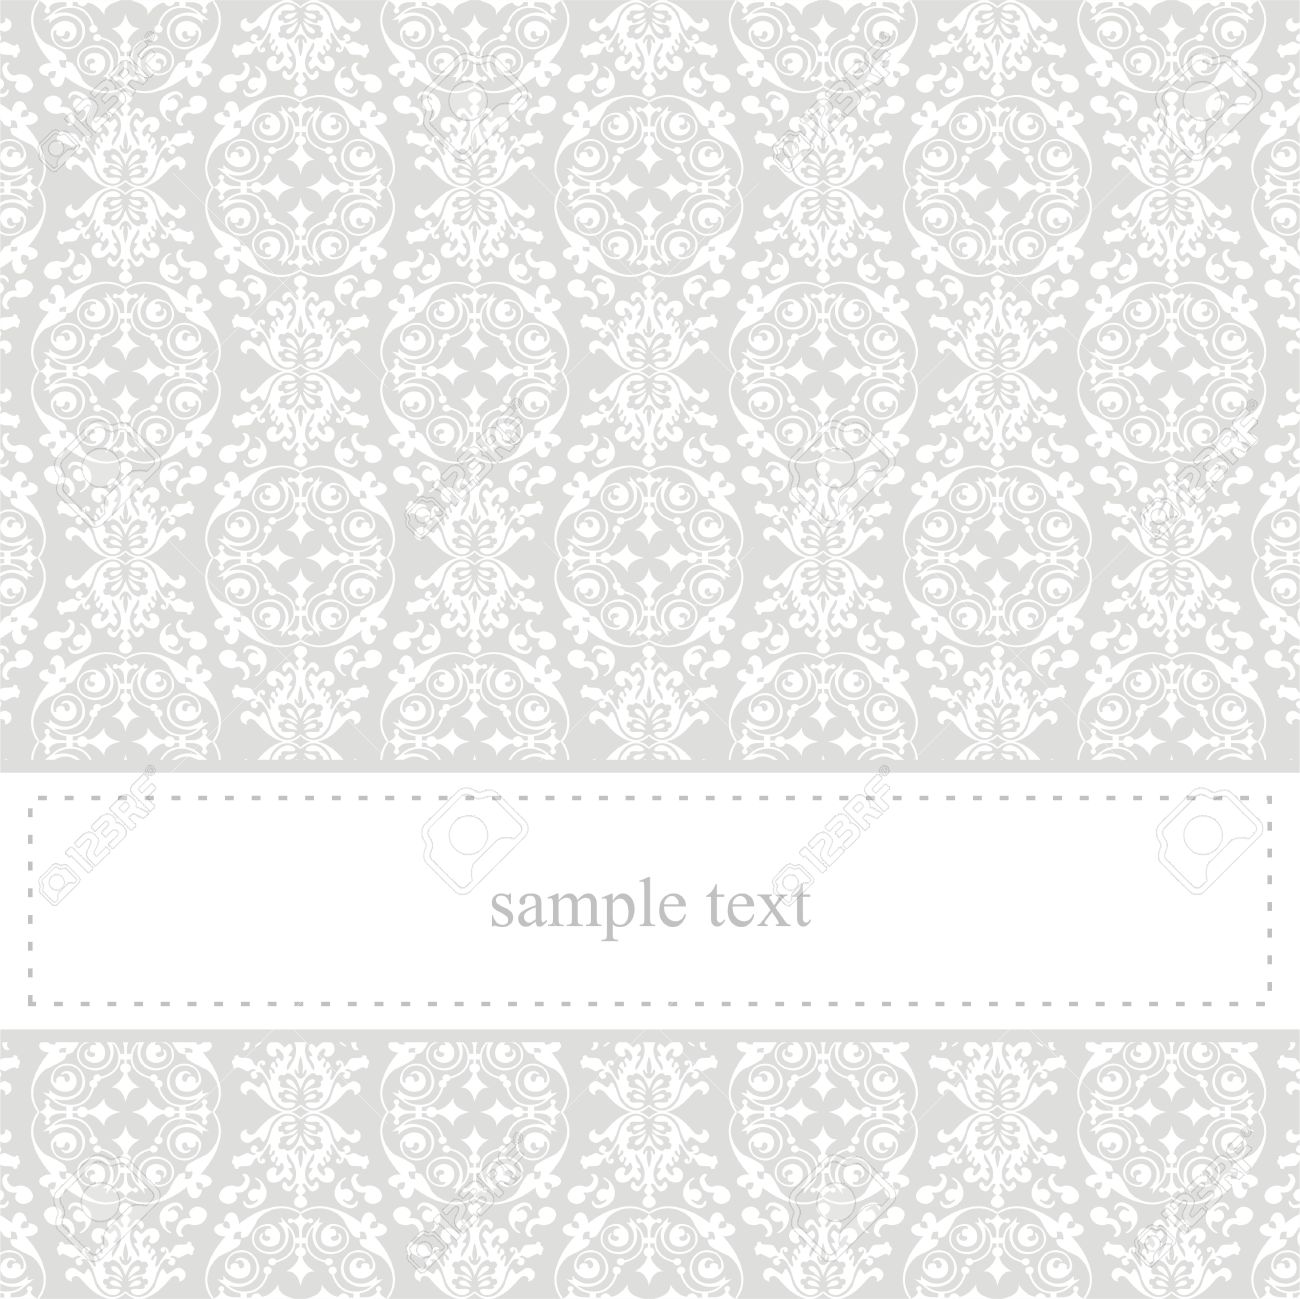 Classic, elegant vector card or invitation for party, birthday or wedding with white lace. Cute background with white space to put your own text message. Stock Vector - 14539045